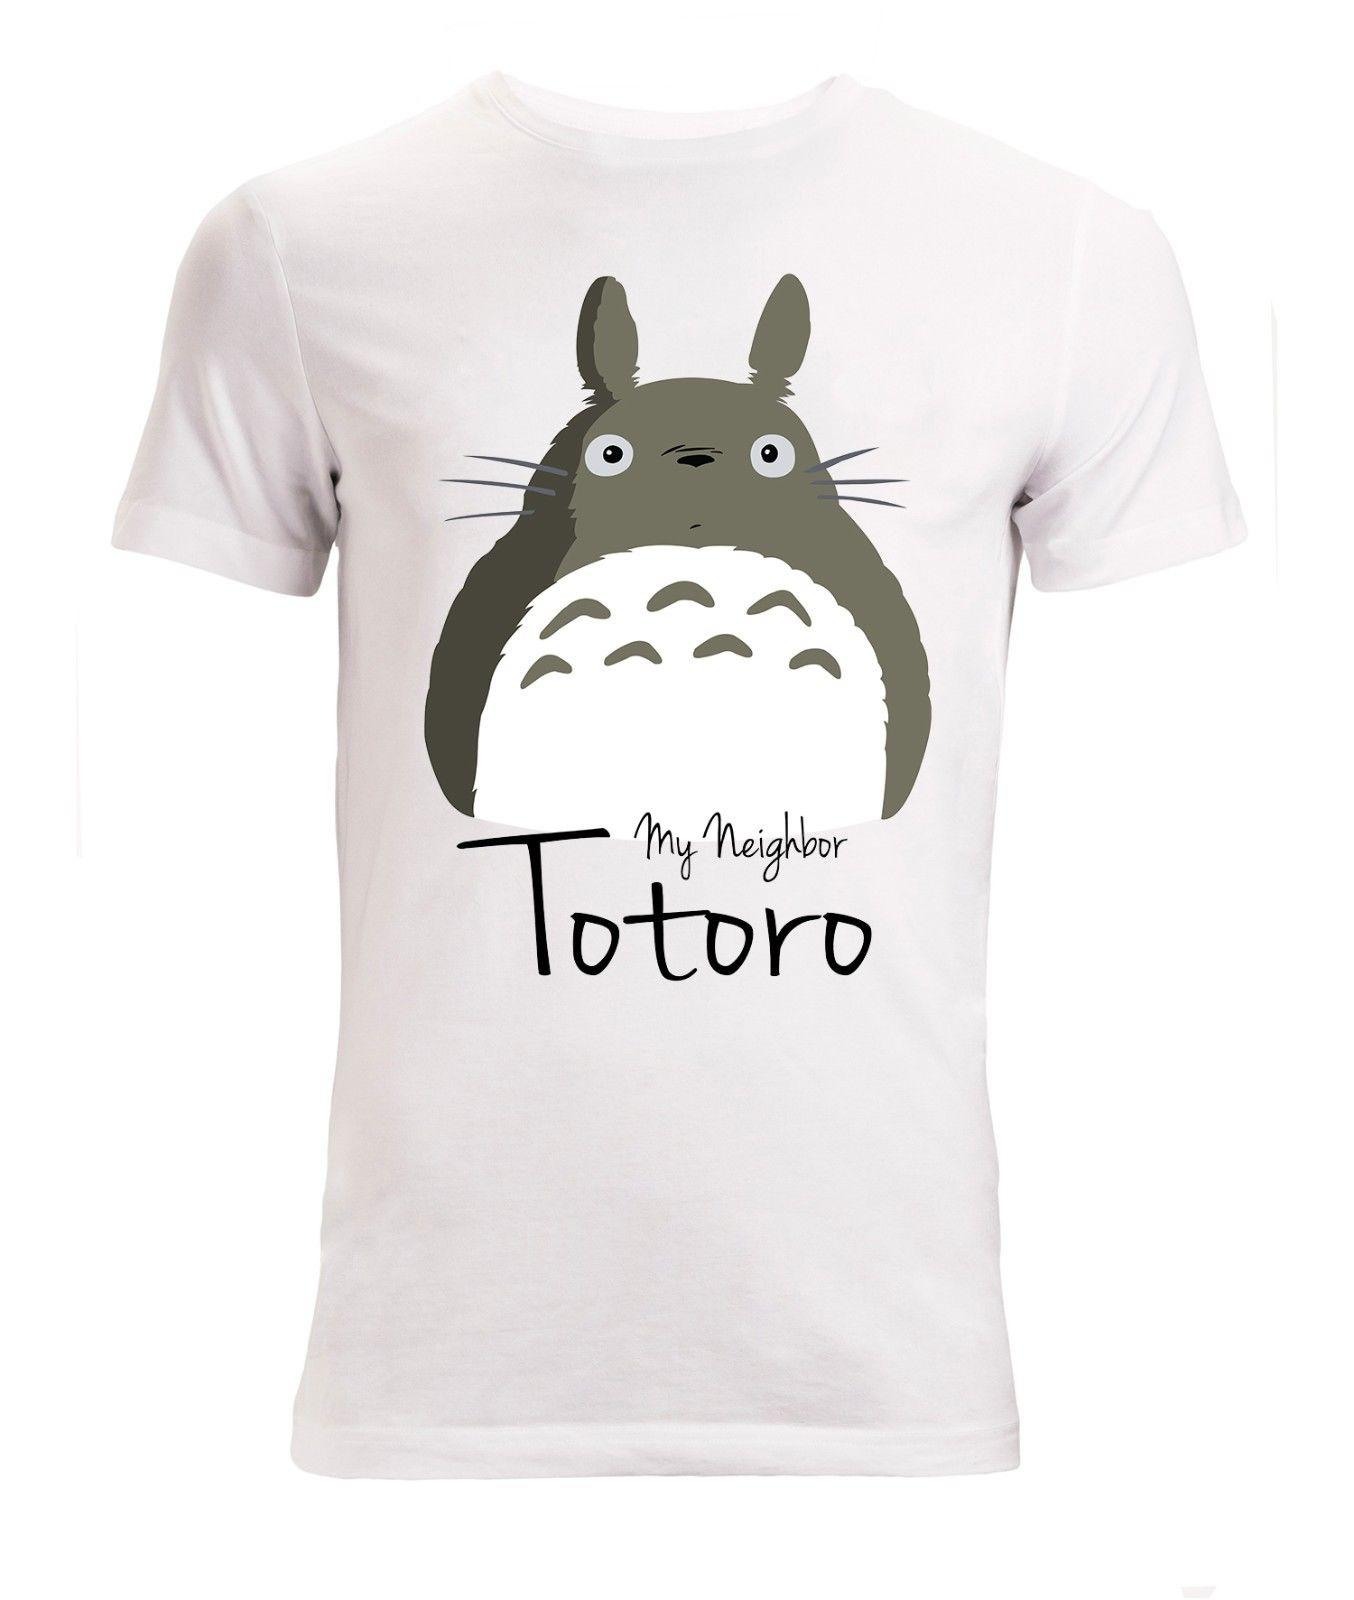 064fcce7f7be5 My Neighbor Totoro Cute Grey Art Stylish men's (woman's available) t shirt  white Funny free shipping Unisex Casual Tshirt top